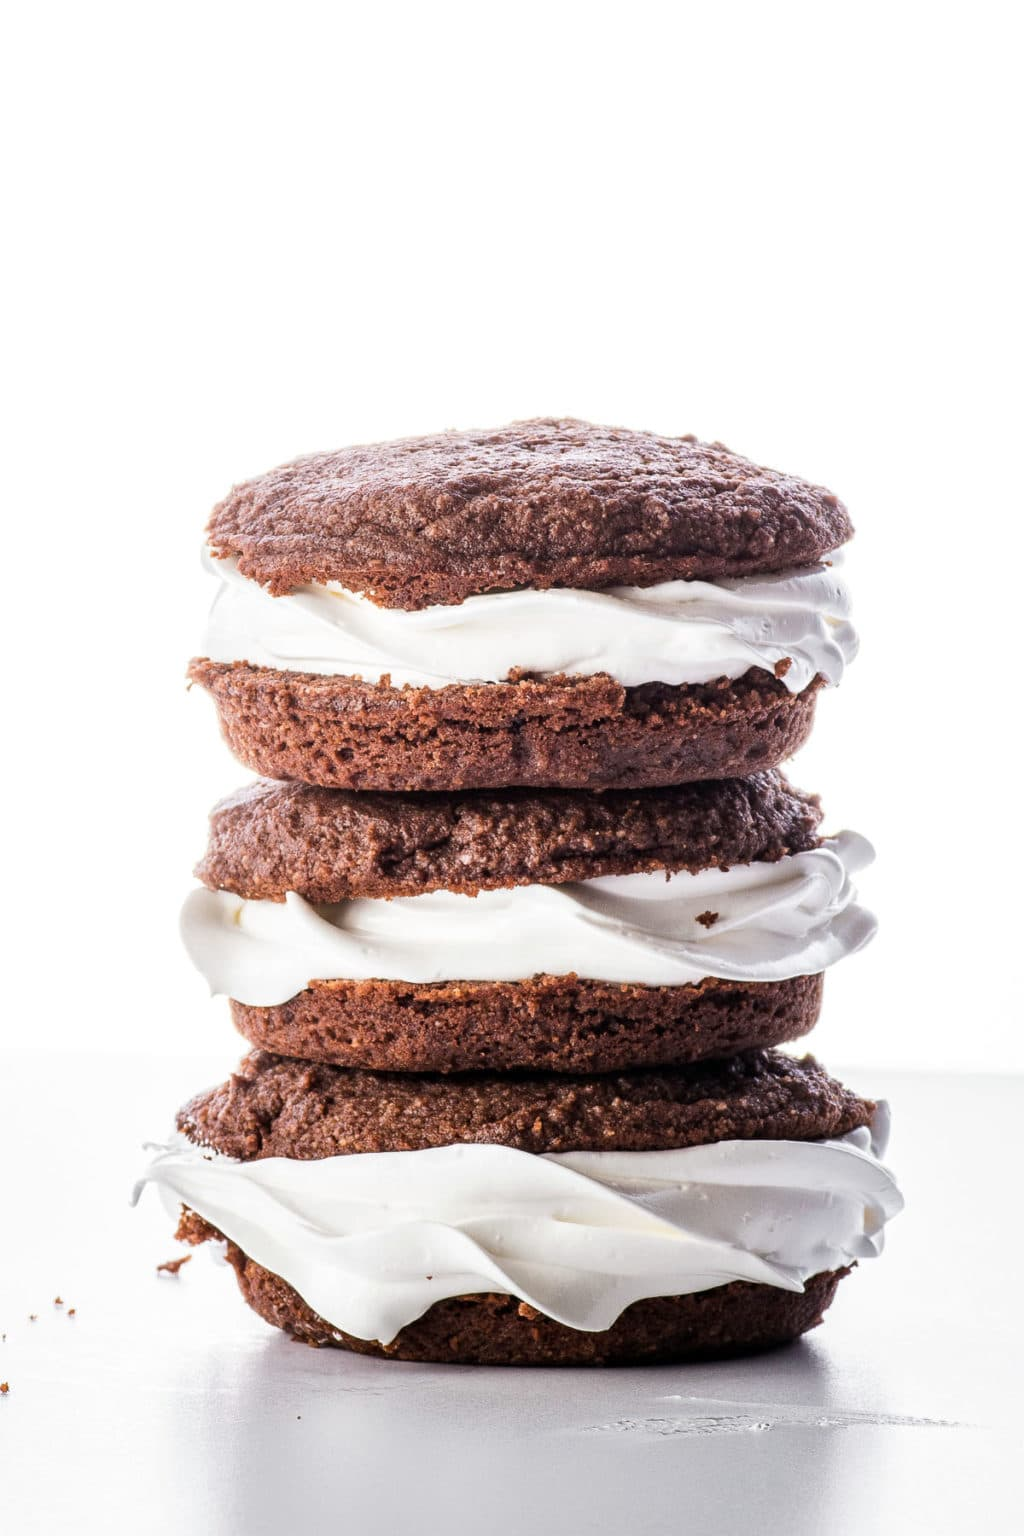 Stacked chocolate keto whoopie pies on a bright white back ground